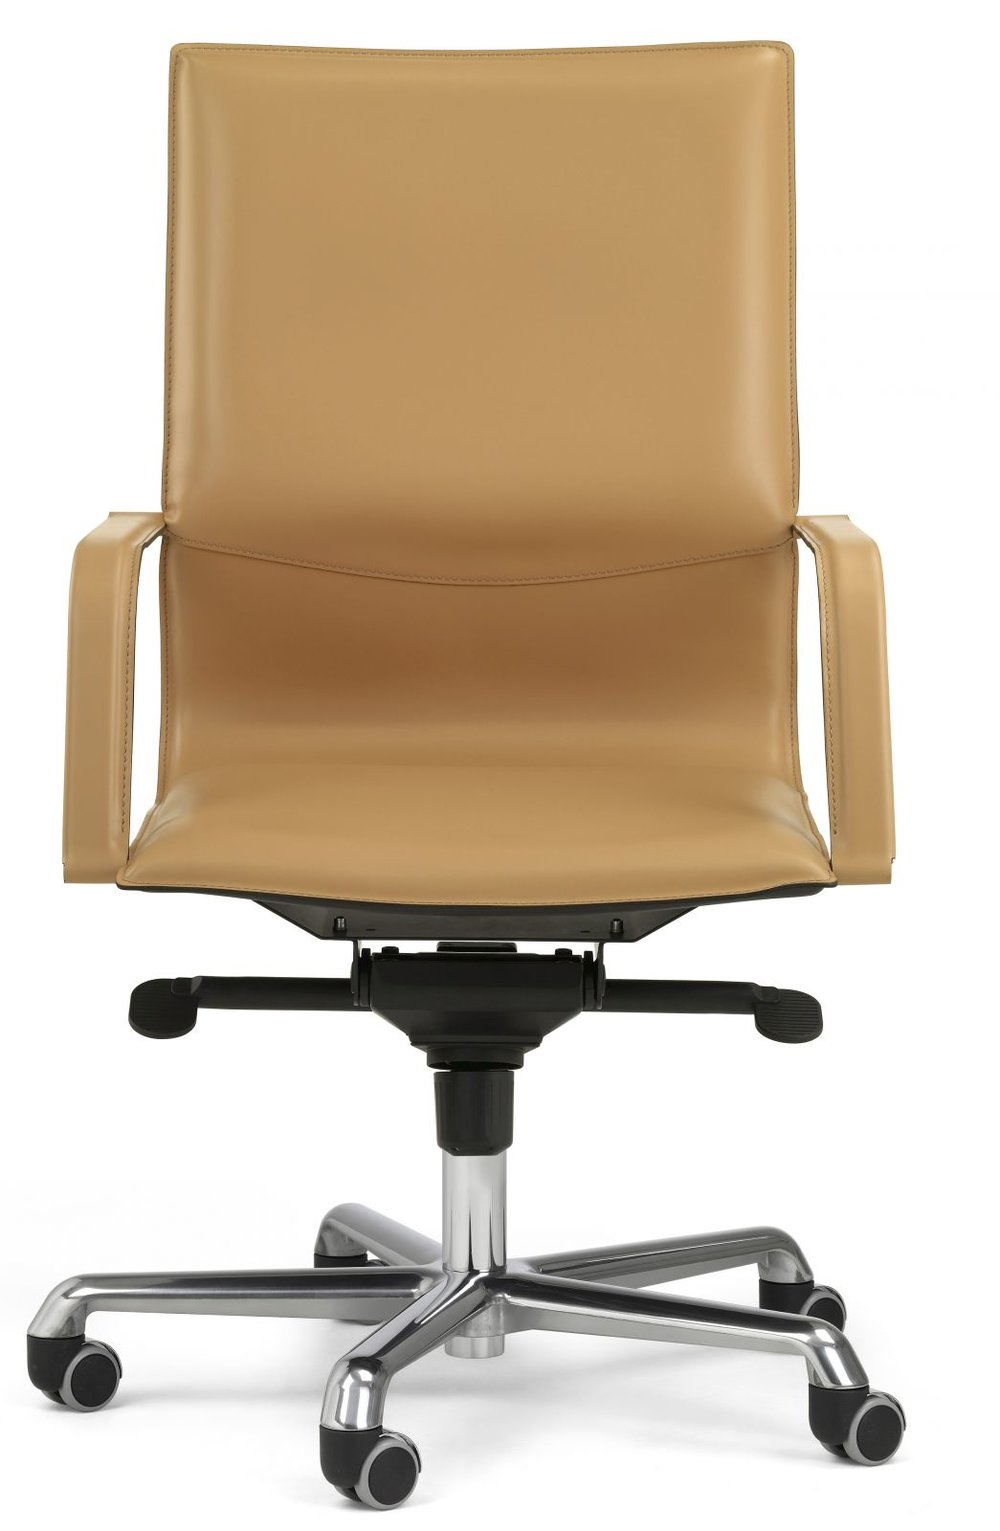 modern-office-chairs-Italian-furniture-designer-chairs (43).jpg